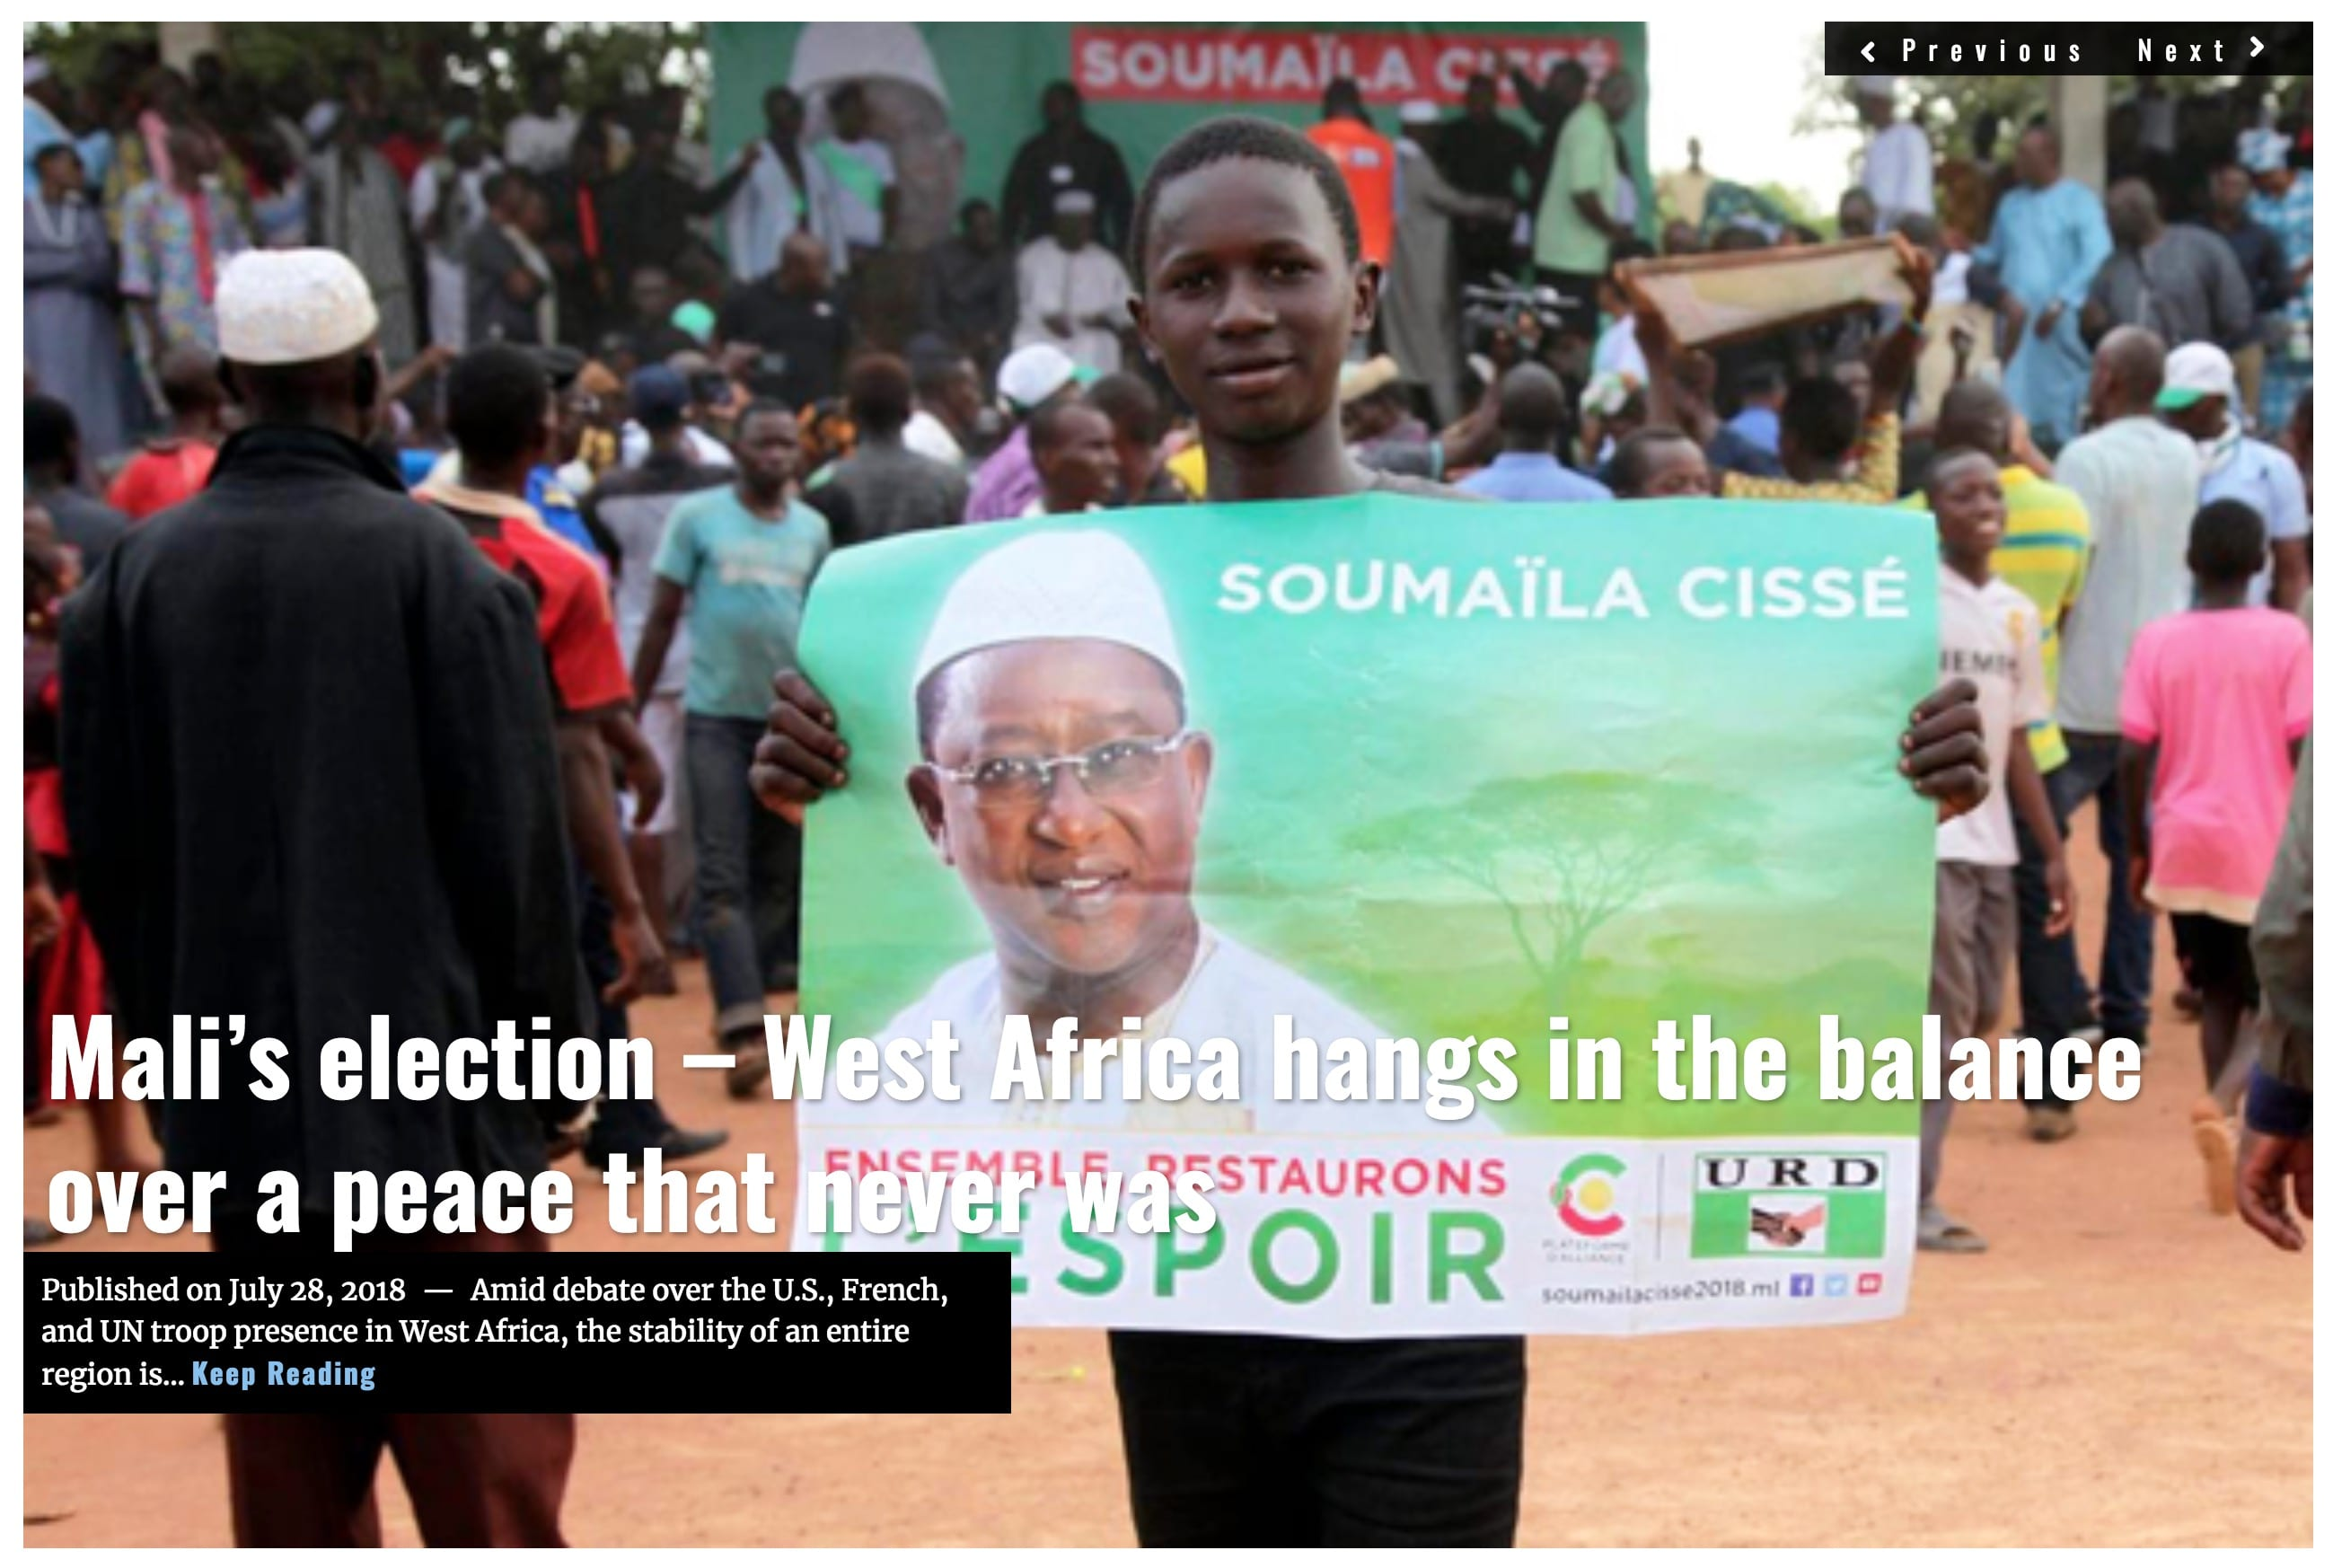 Image Lima Charlie News Headline Mali election JUL 28 2018